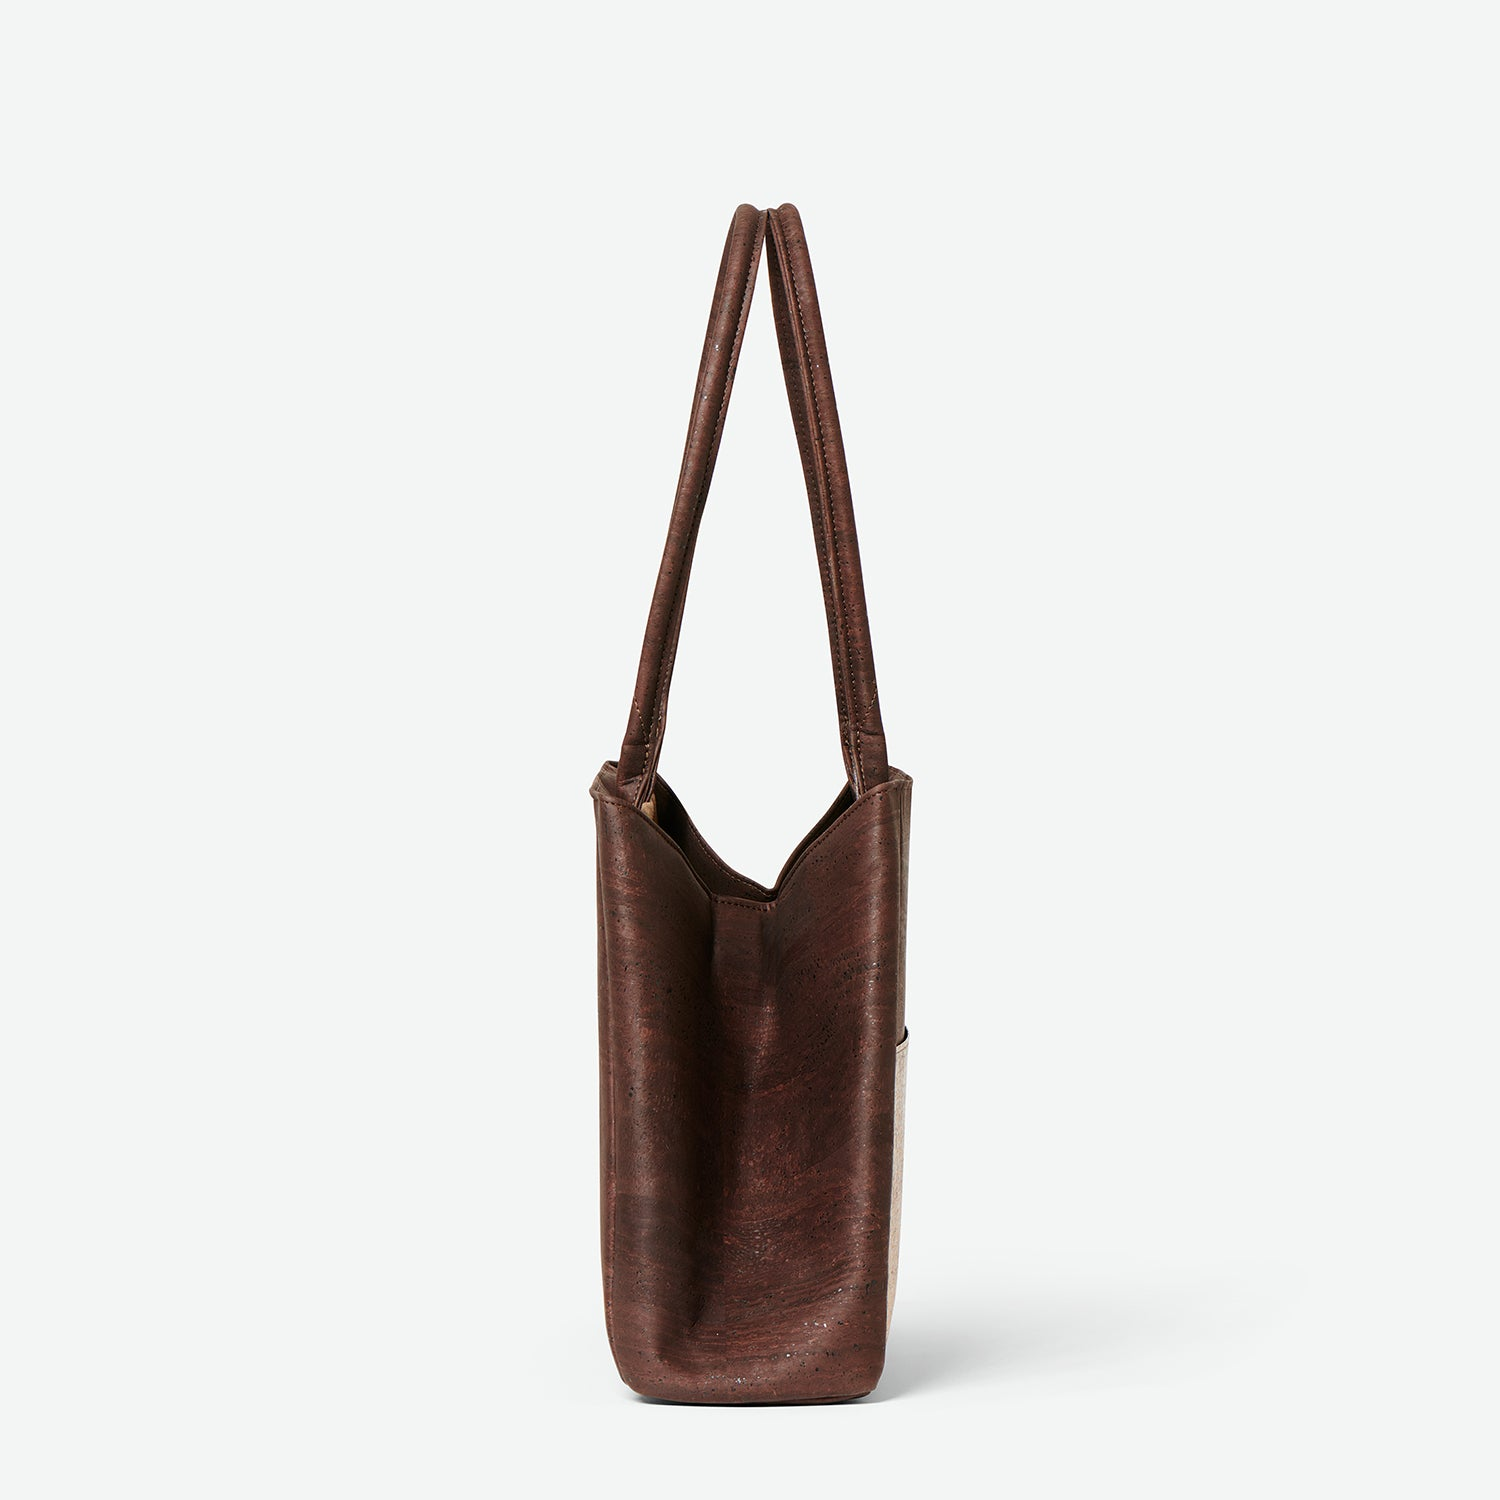 Tote bags for business women